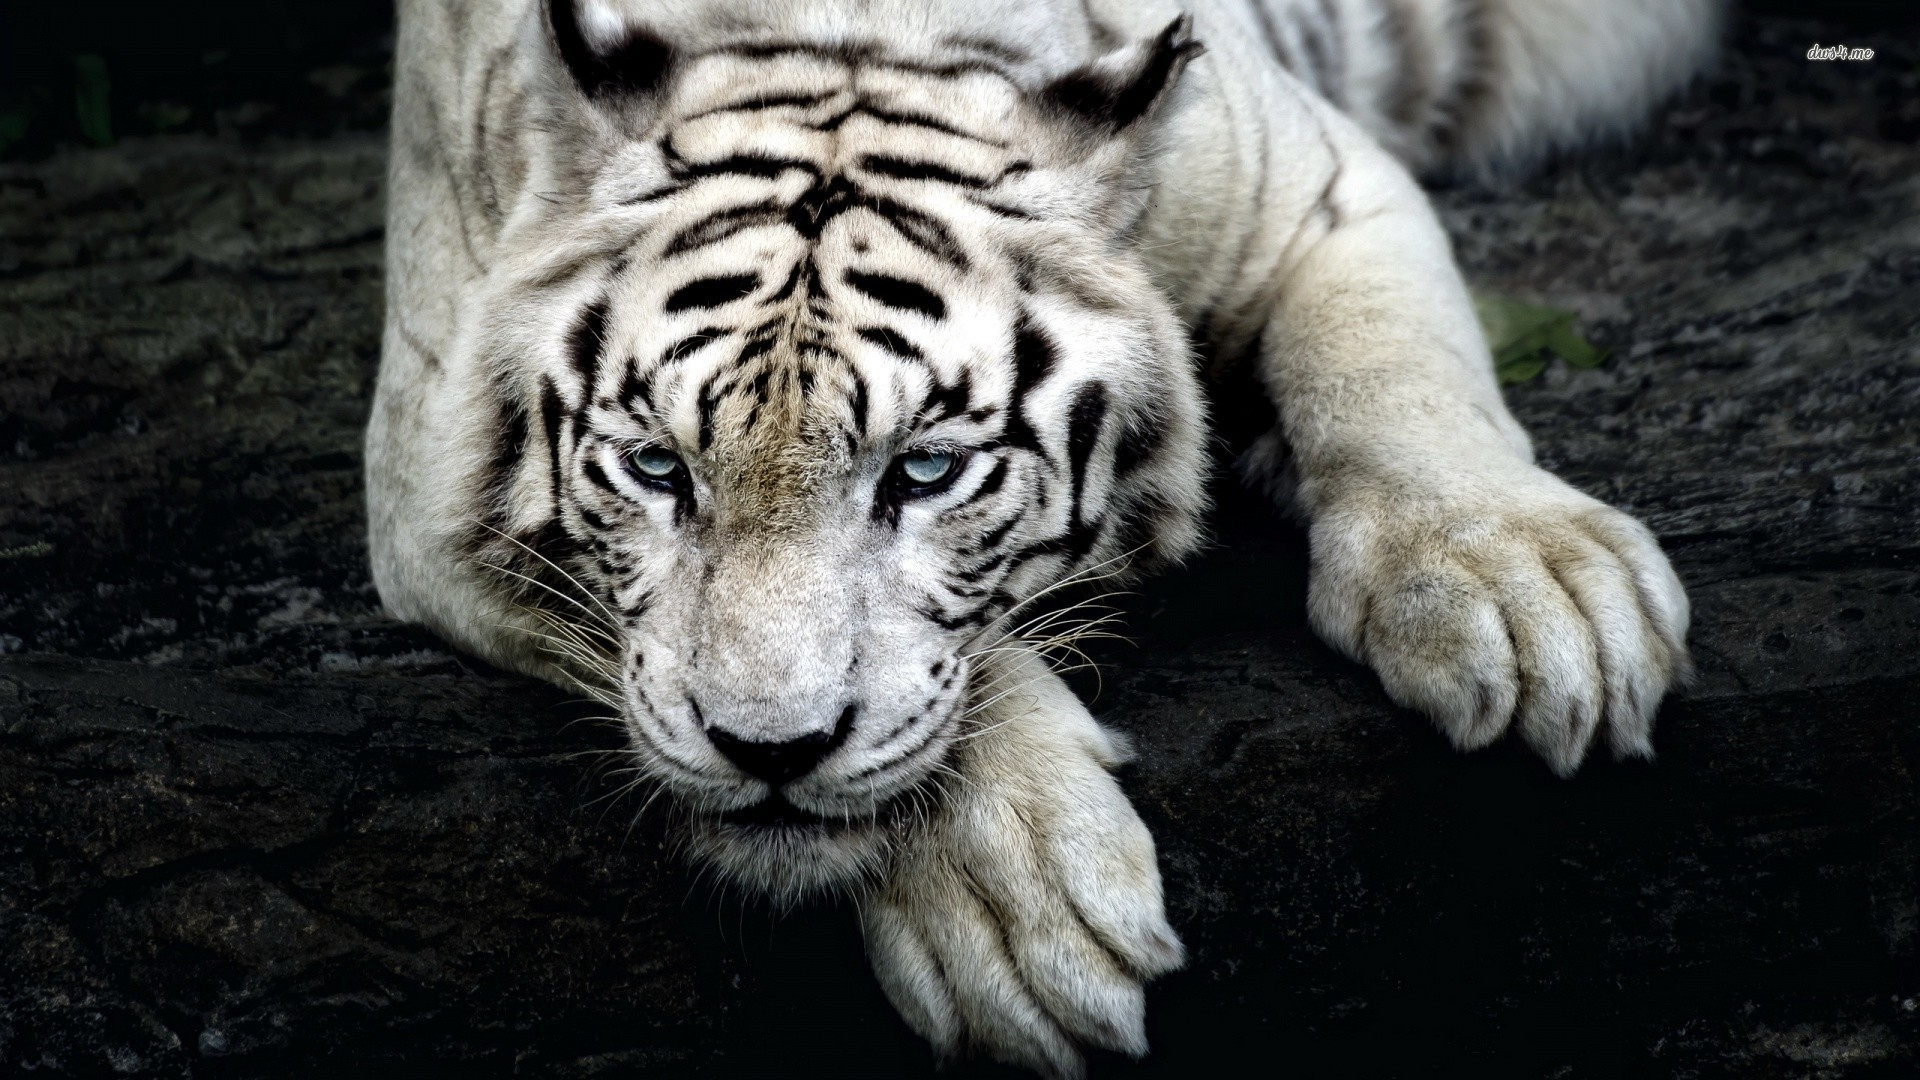 White Tiger Cool Backgrounds Wallpapers